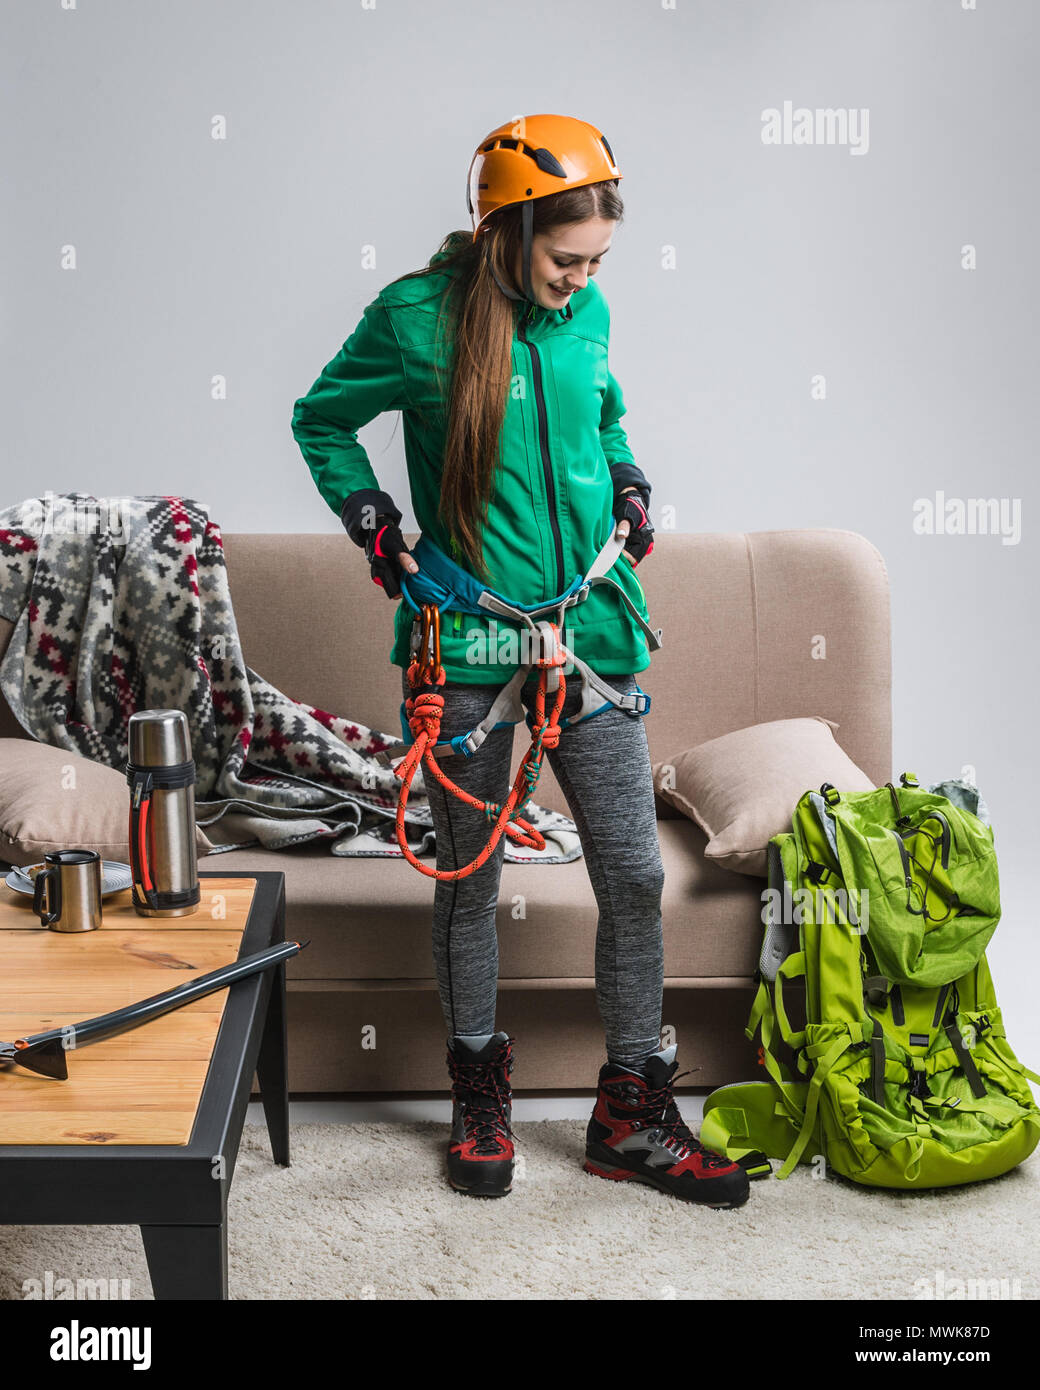 beautiful climber with climbing equipment at home - Stock Image